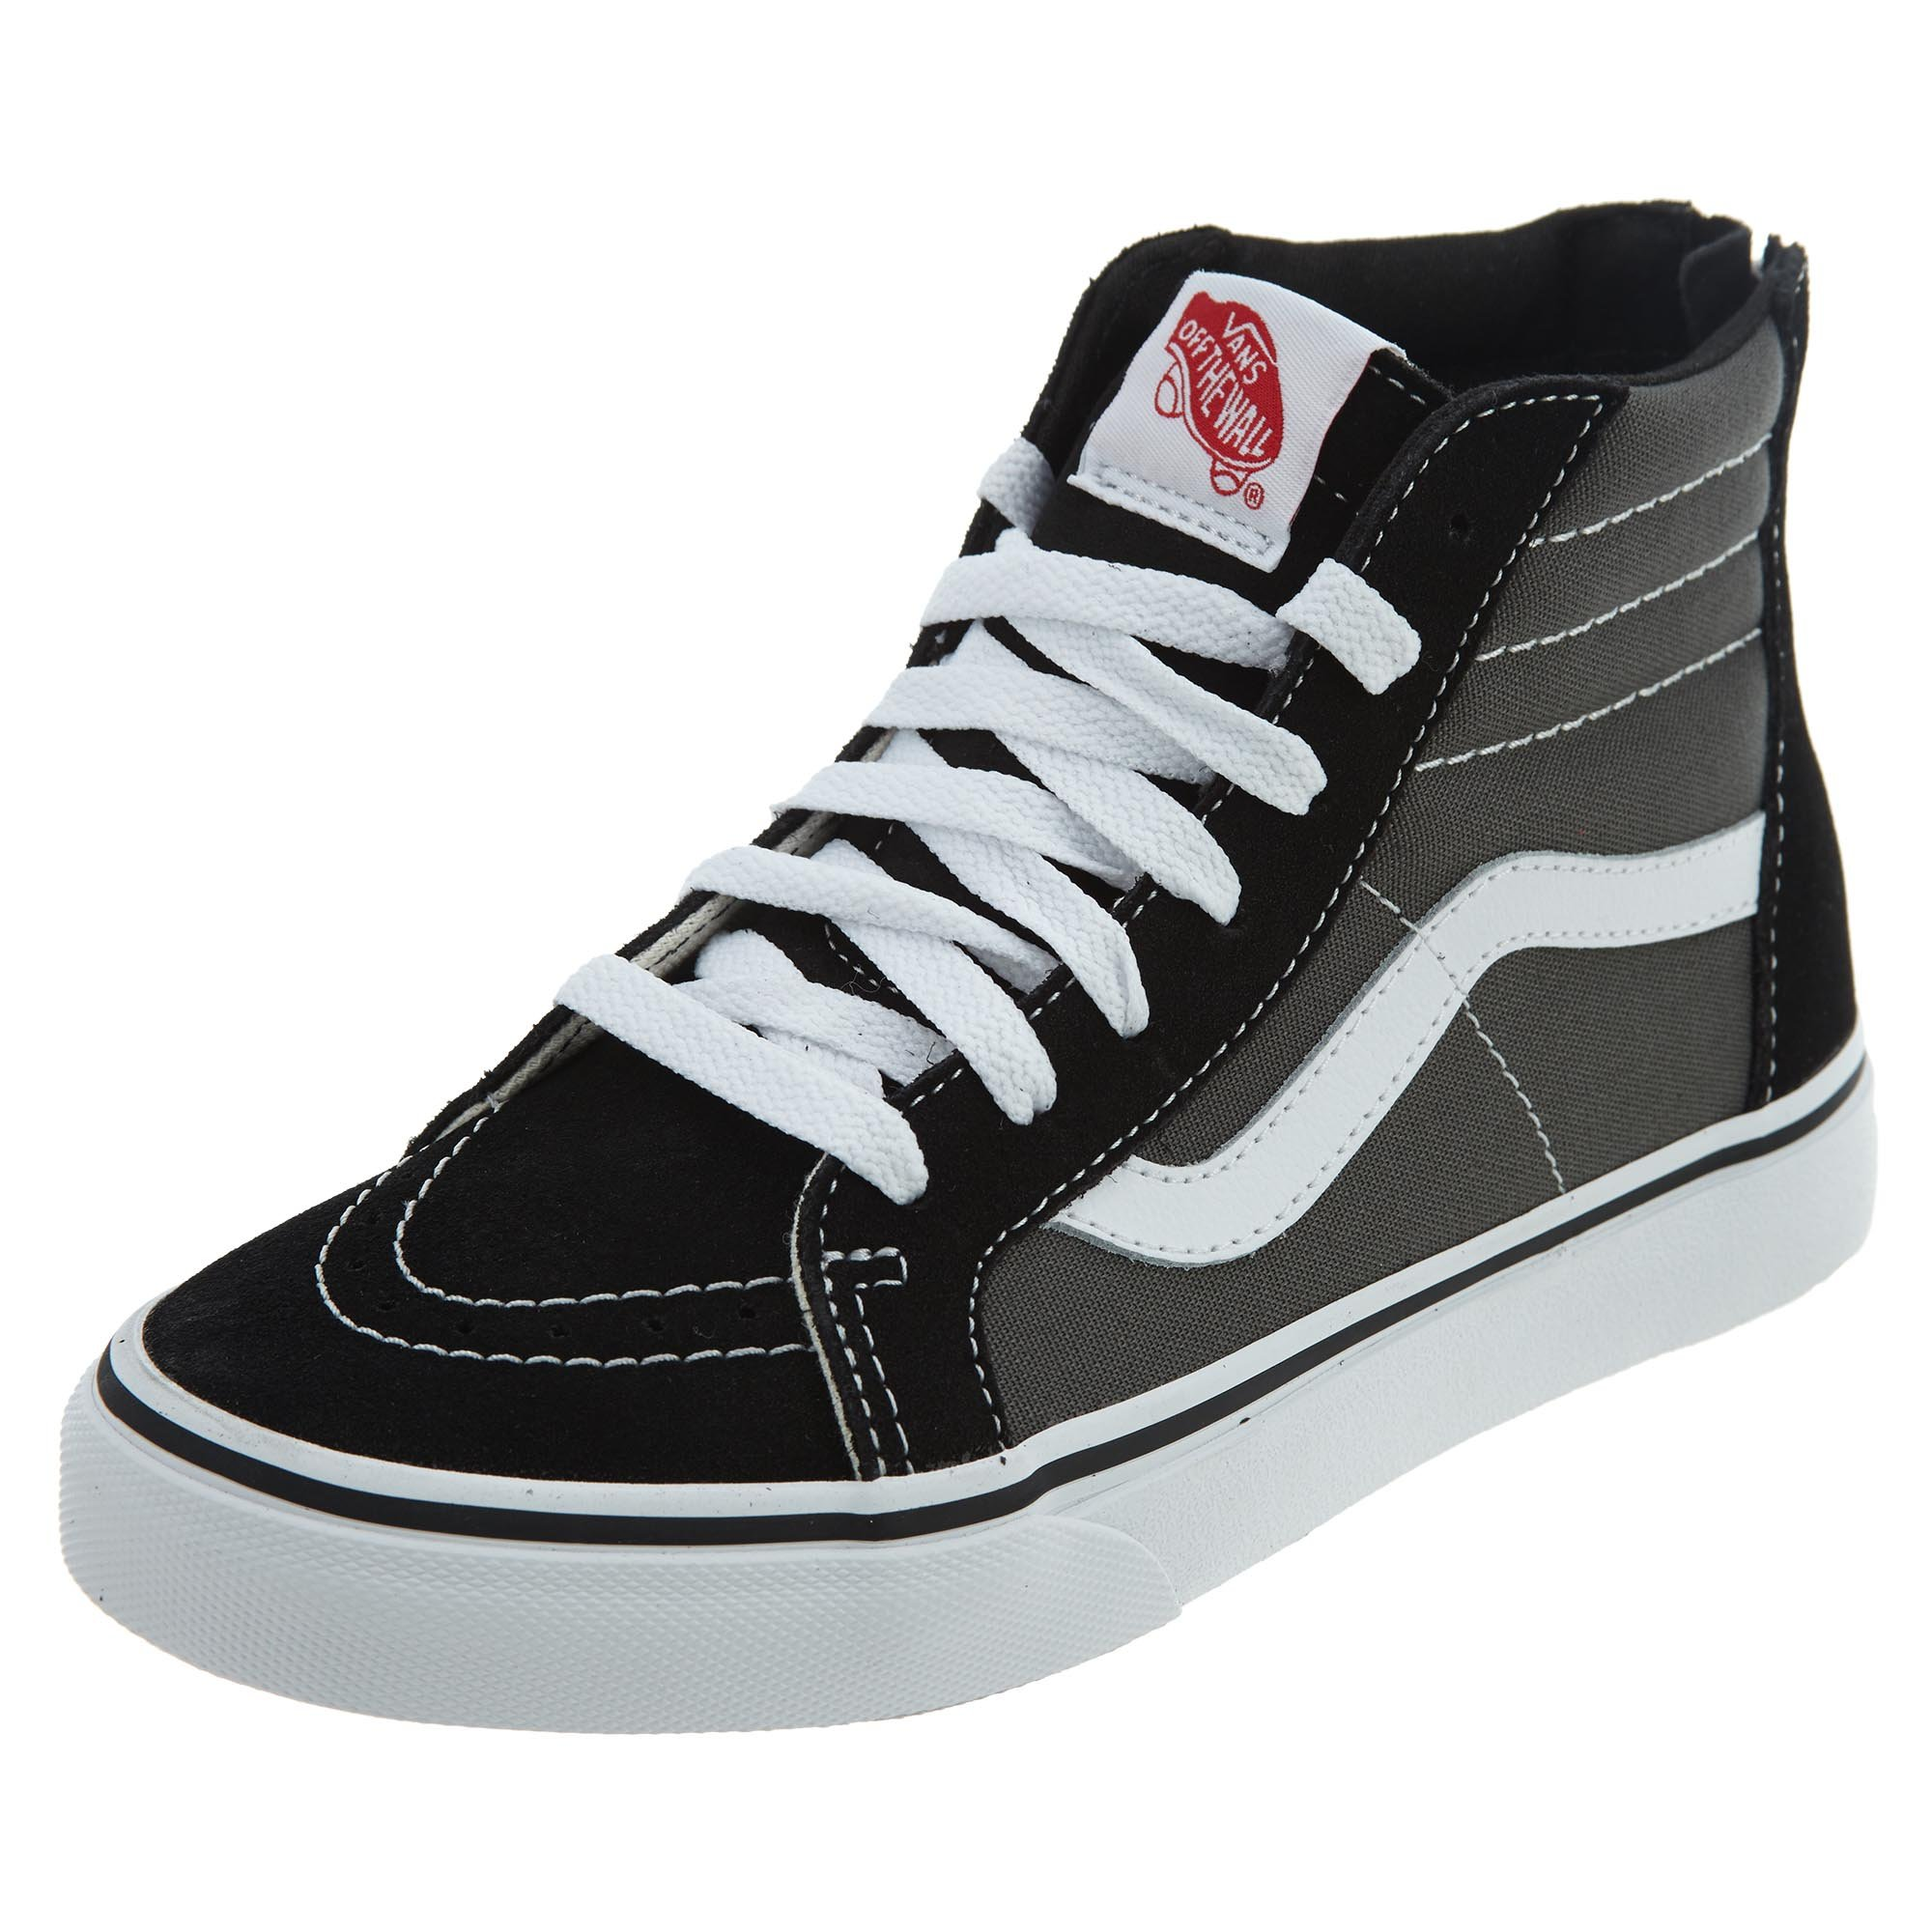 Vans Kids' Sk8-Hi Zip-K Black/Charcoal